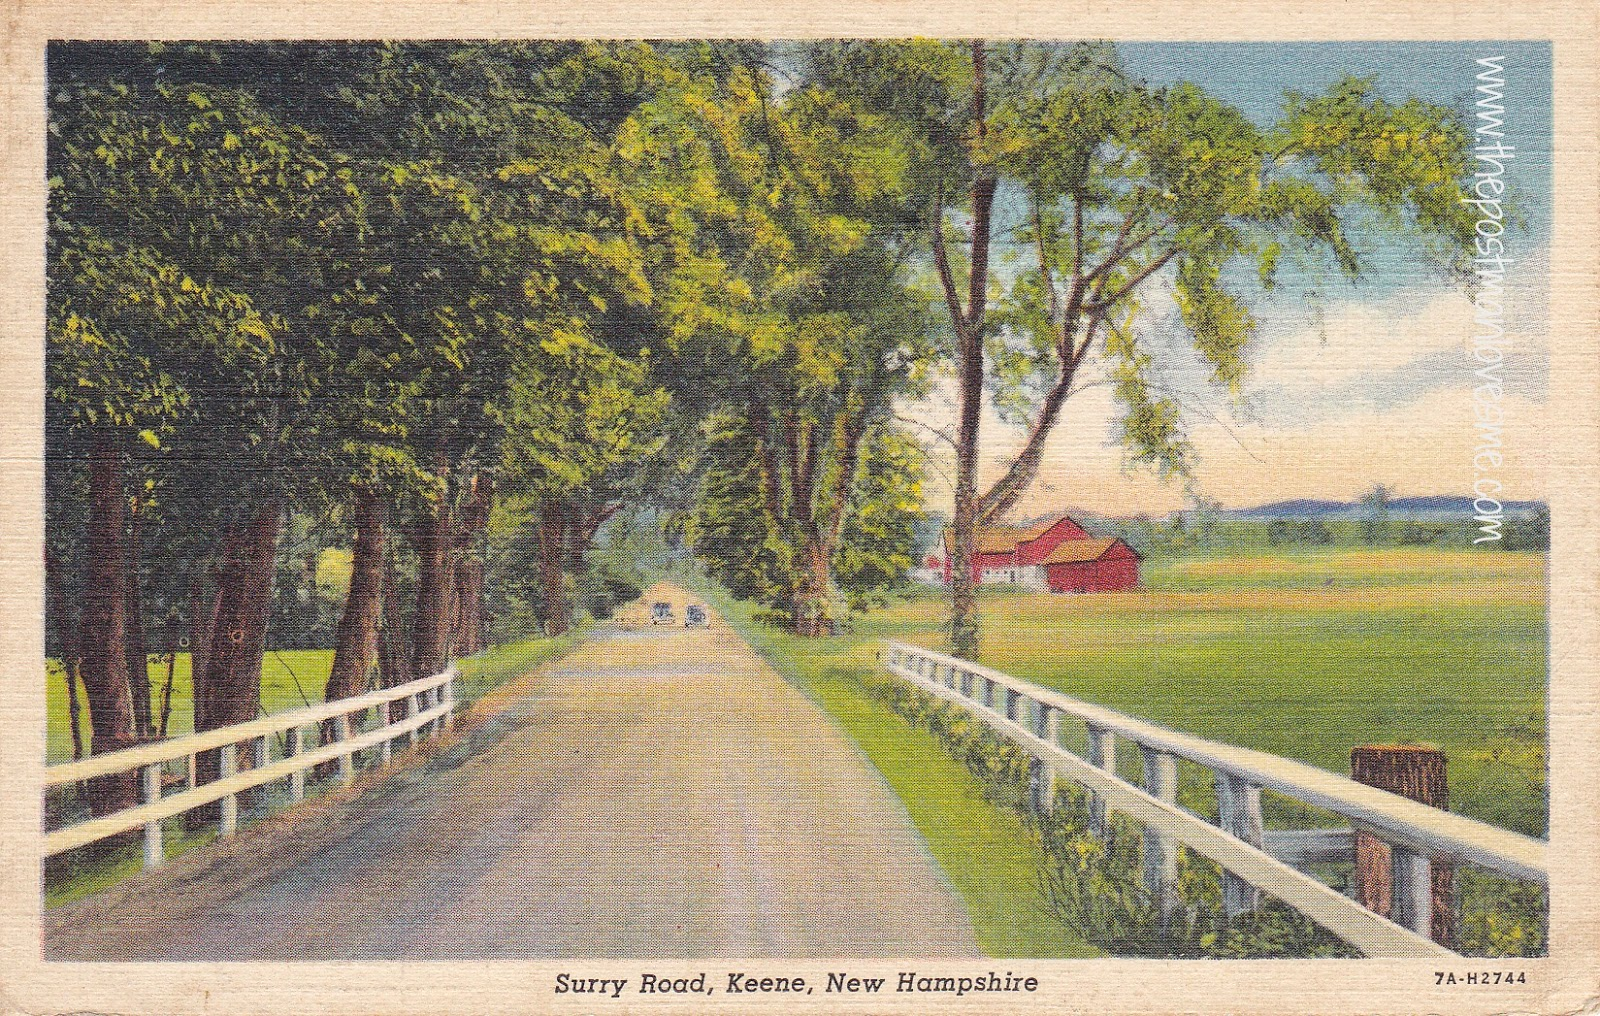 Surry Road, Keene New Hampshire Vintage Postcard